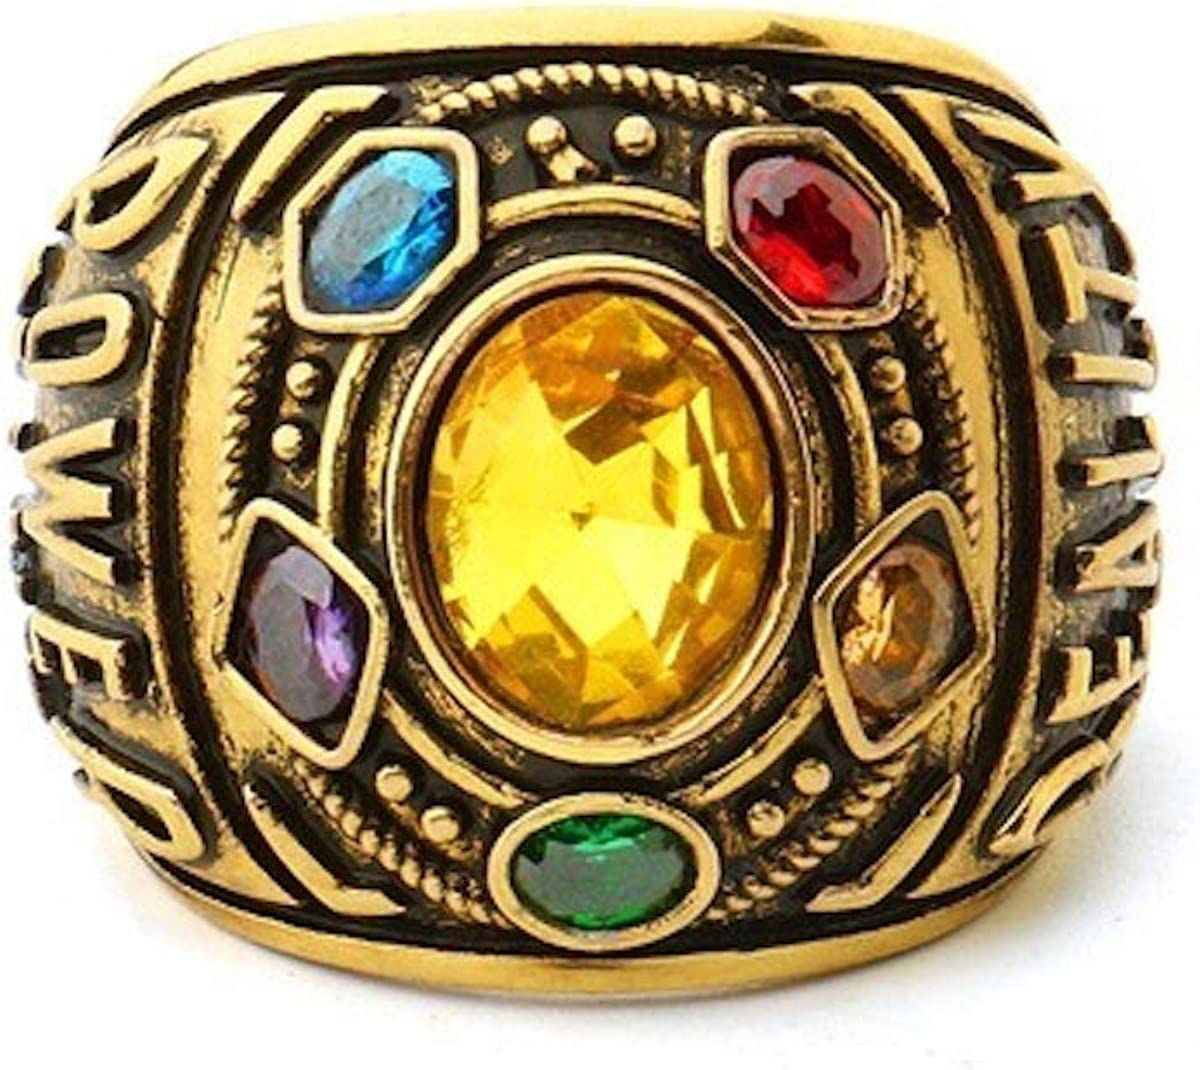 Hot Marvel Avengers Infinity Stones Ring For Men Stainless Steel Infinity War Soul Stone Power Thanos Crystal Ring Cosplay Golden Gauntlet Jewelry Costume Accessory Best Gift For Men Boys Husband